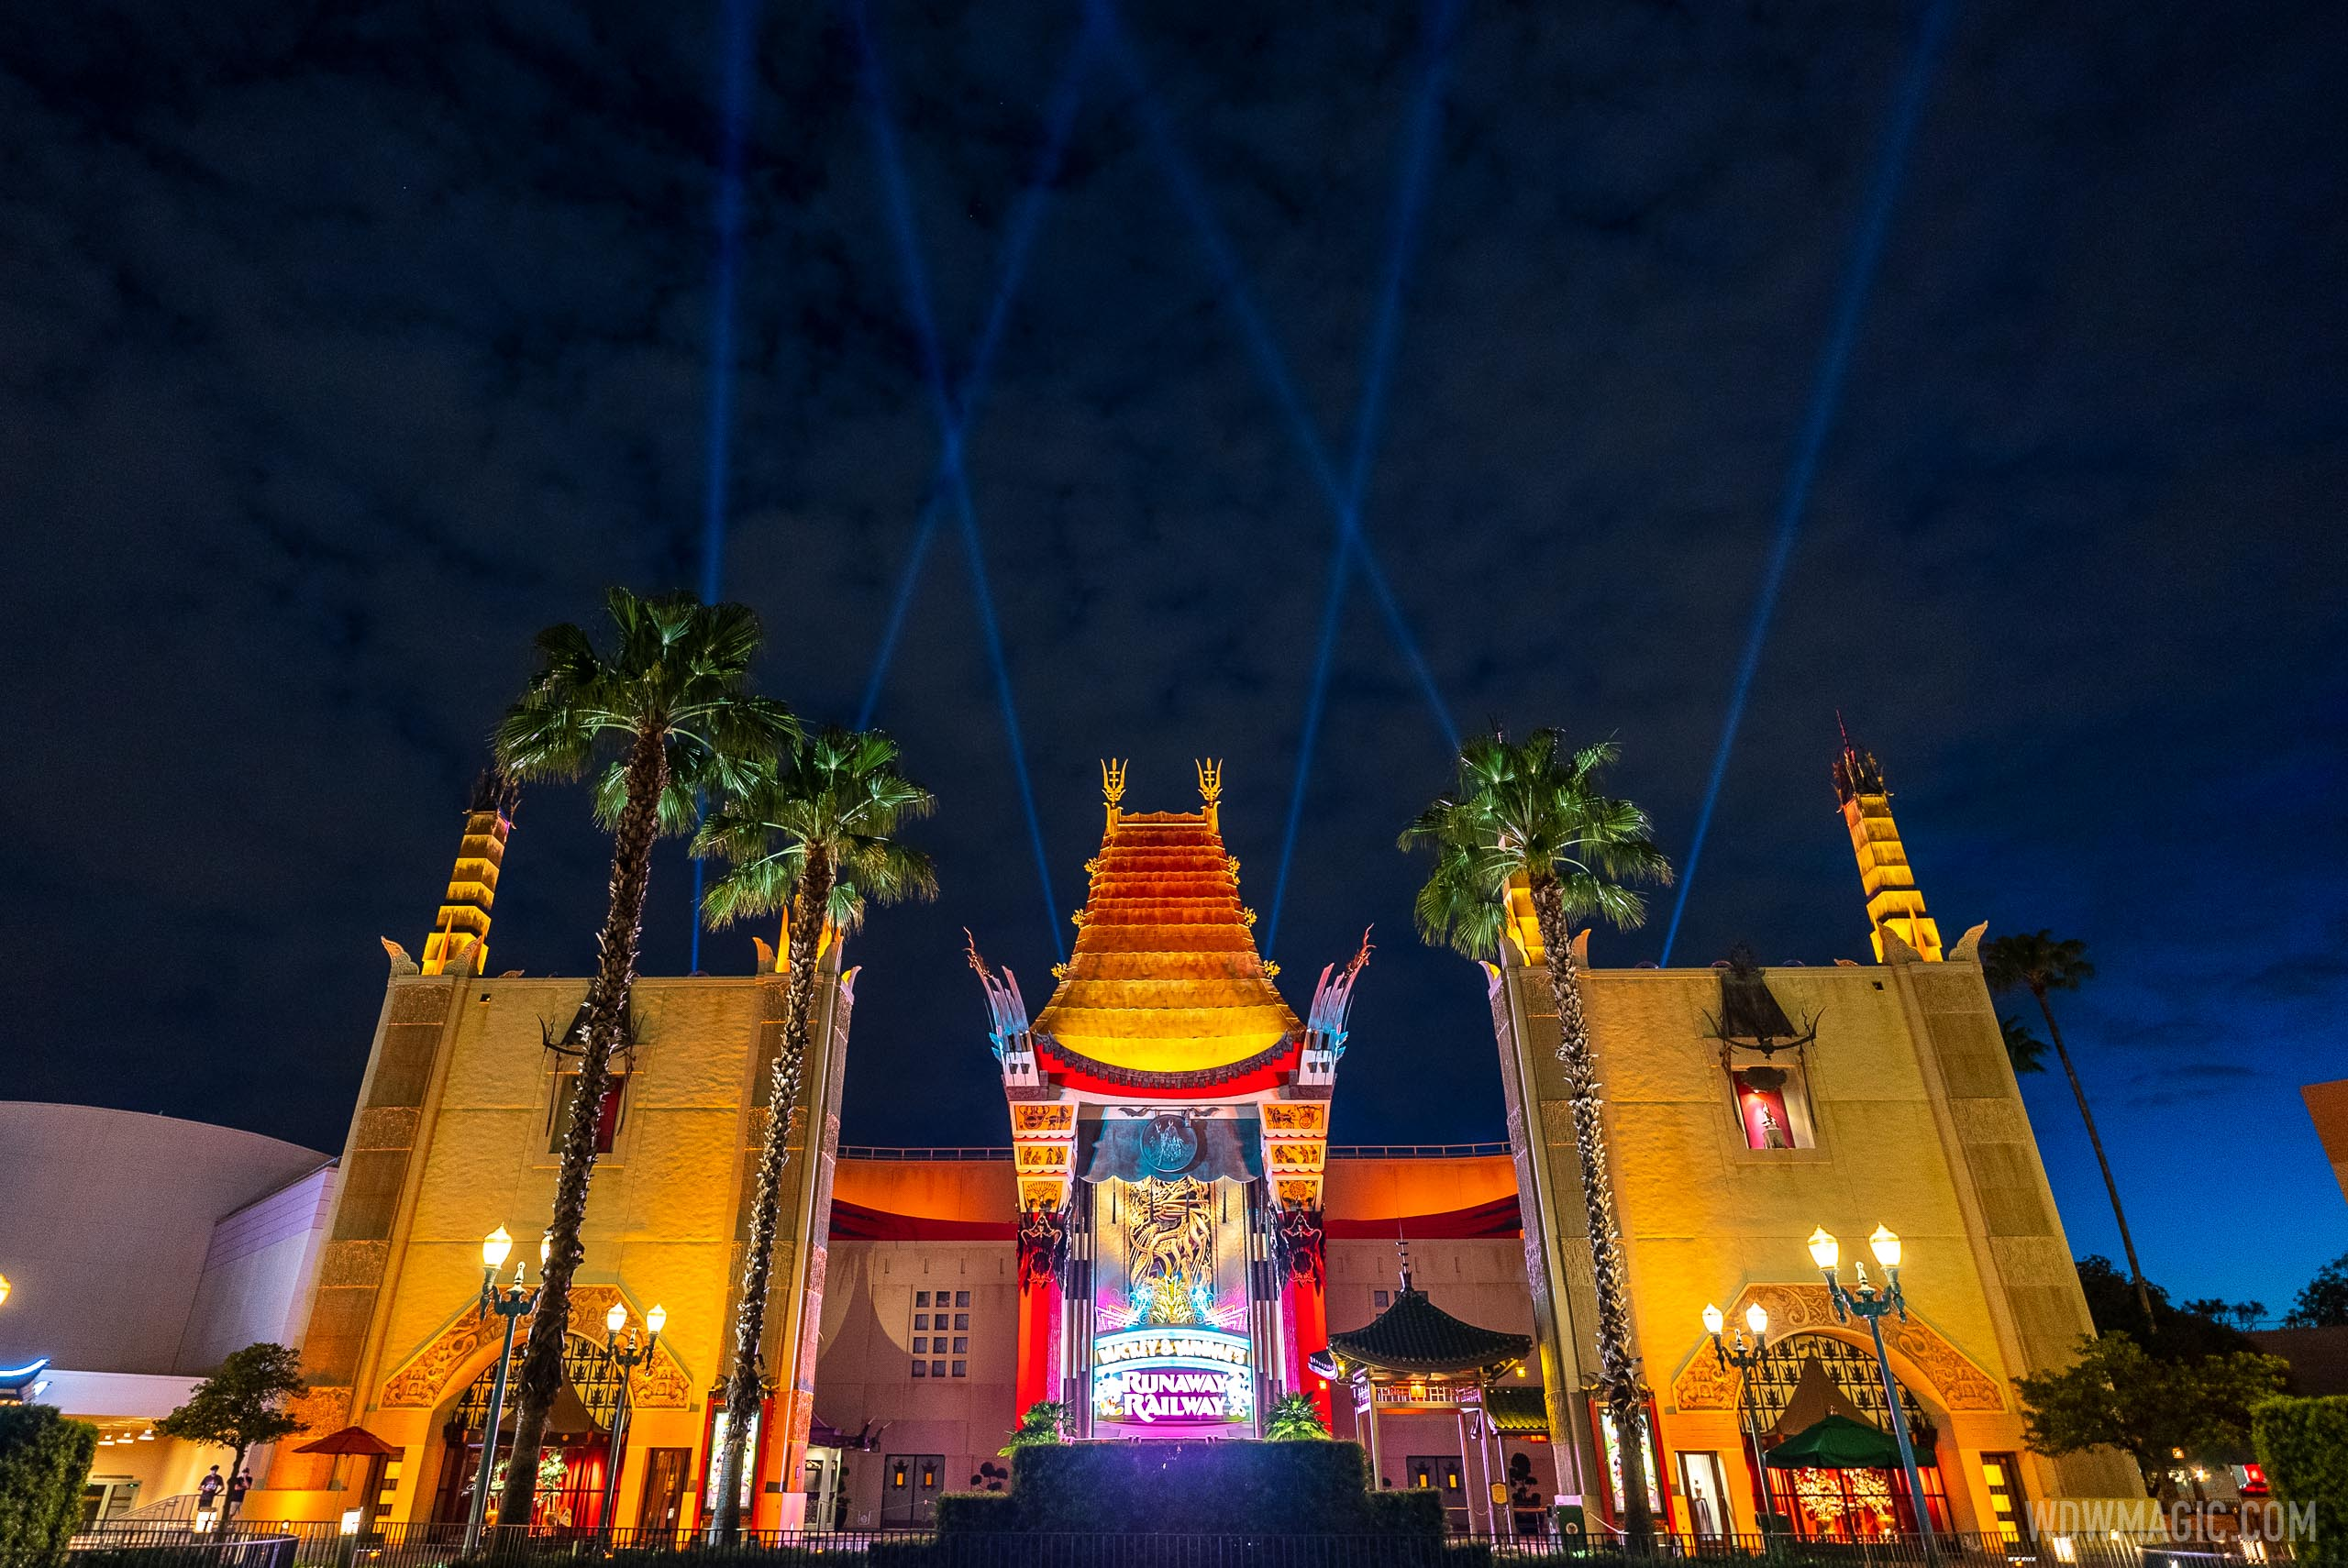 Disney's Hollywood Studios gains 2 hours over the originally published hours